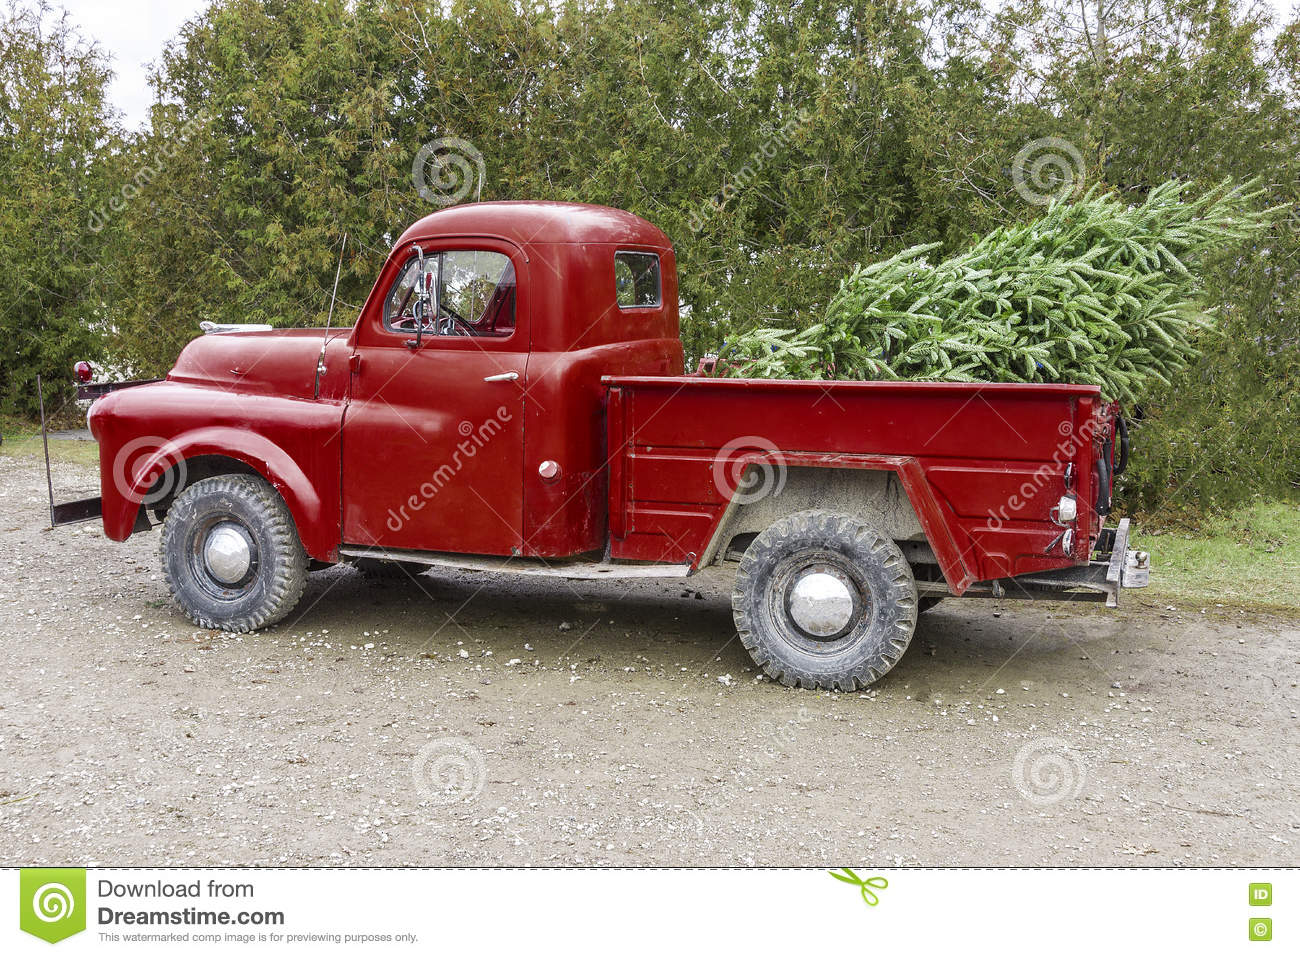 Vintage Red Truck Christmas Decor.Old Vintage Red Pickup Truck Carrying A Christmas Tree In